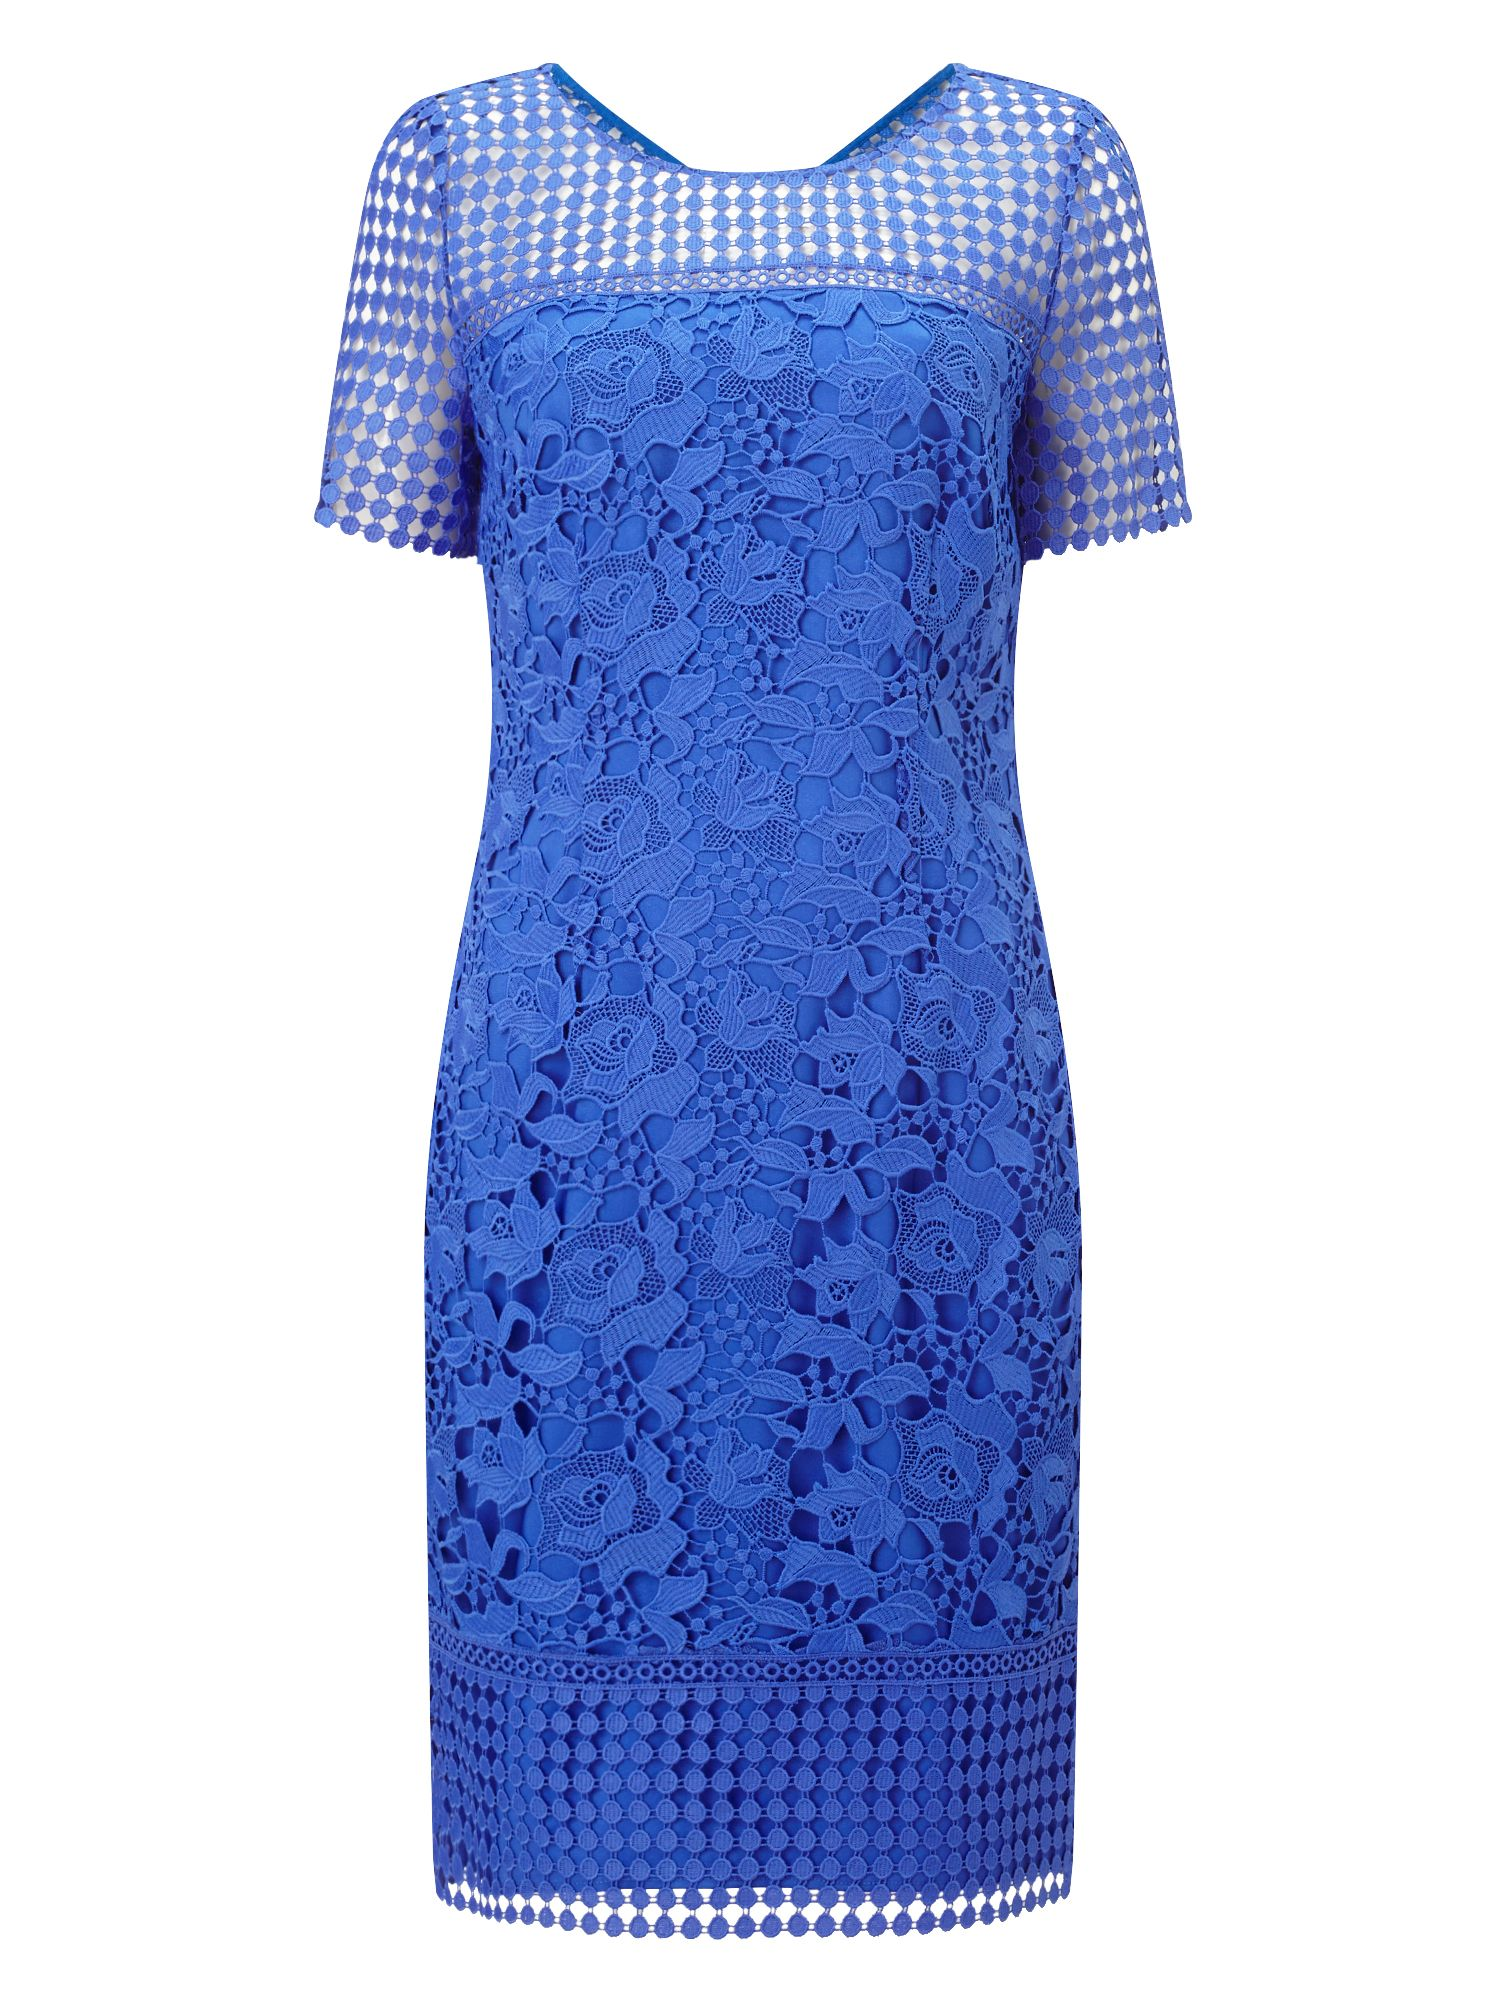 Jacques Vert Petite Floral Lace Dress, Blue